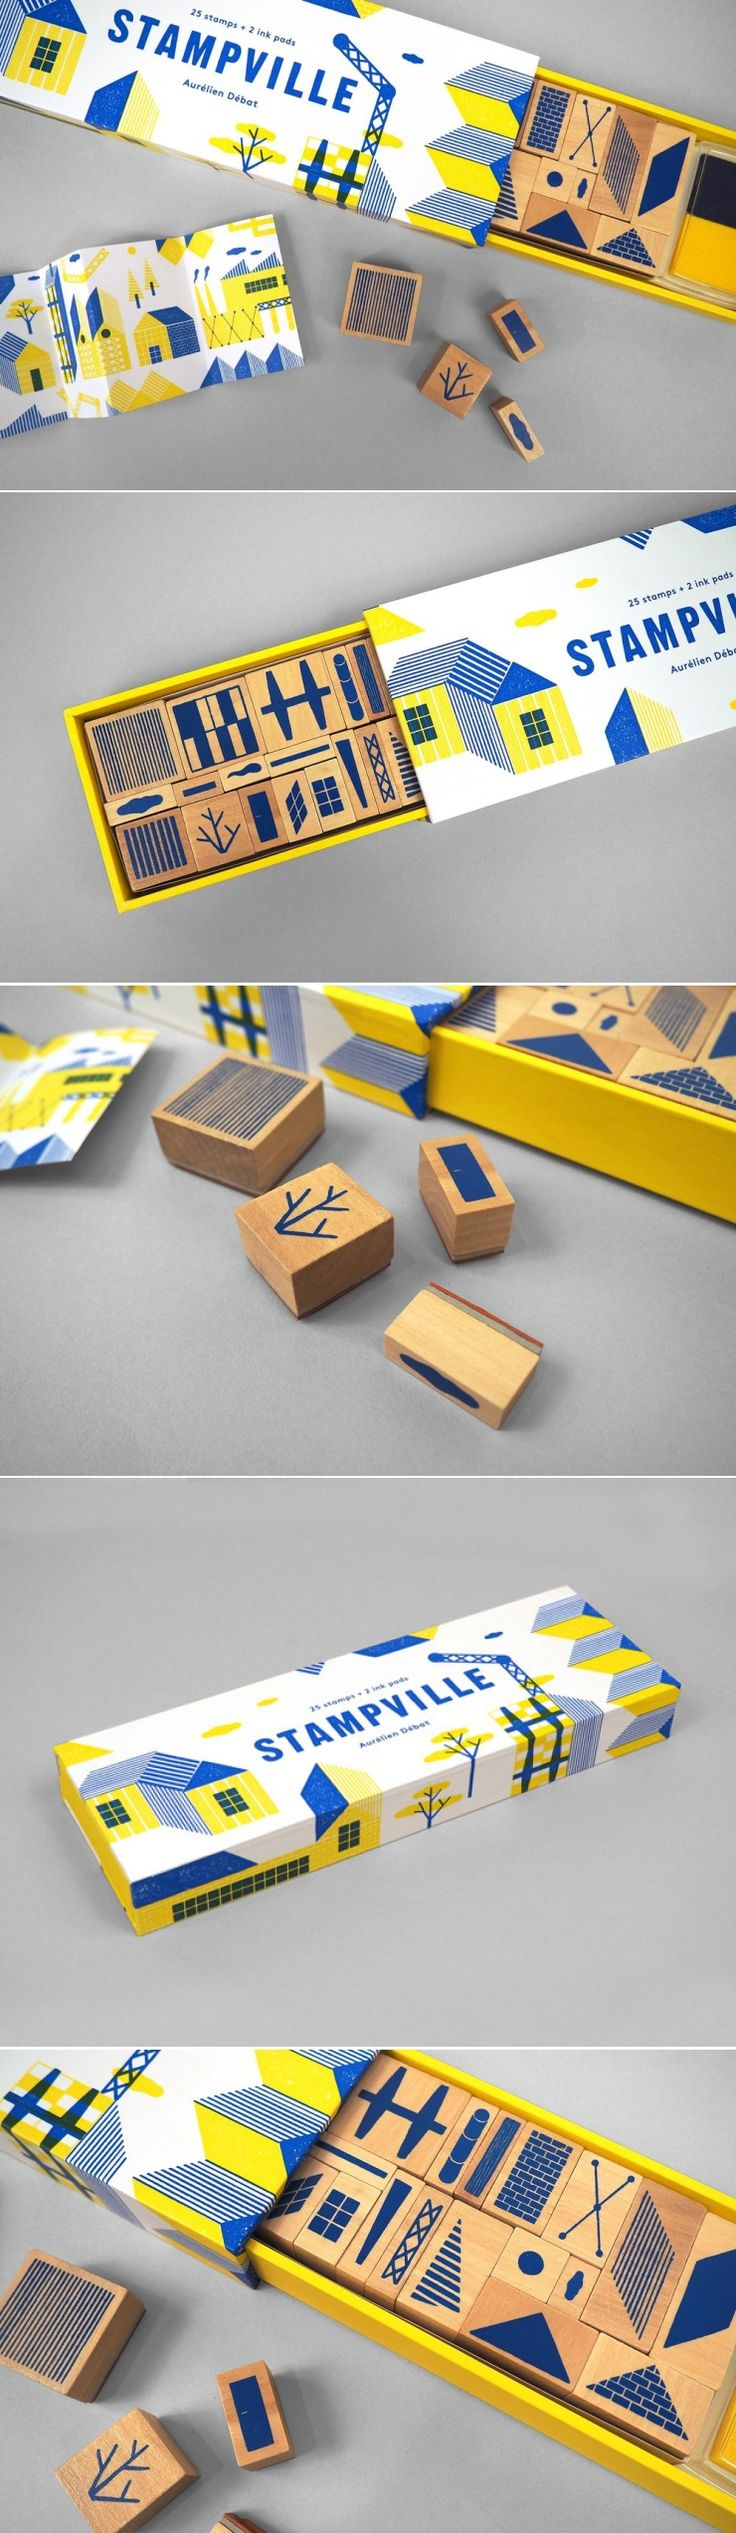 Be Your Own Architect and Designer With Stampville — The Dieline | Packaging & Branding Design & Innovation News